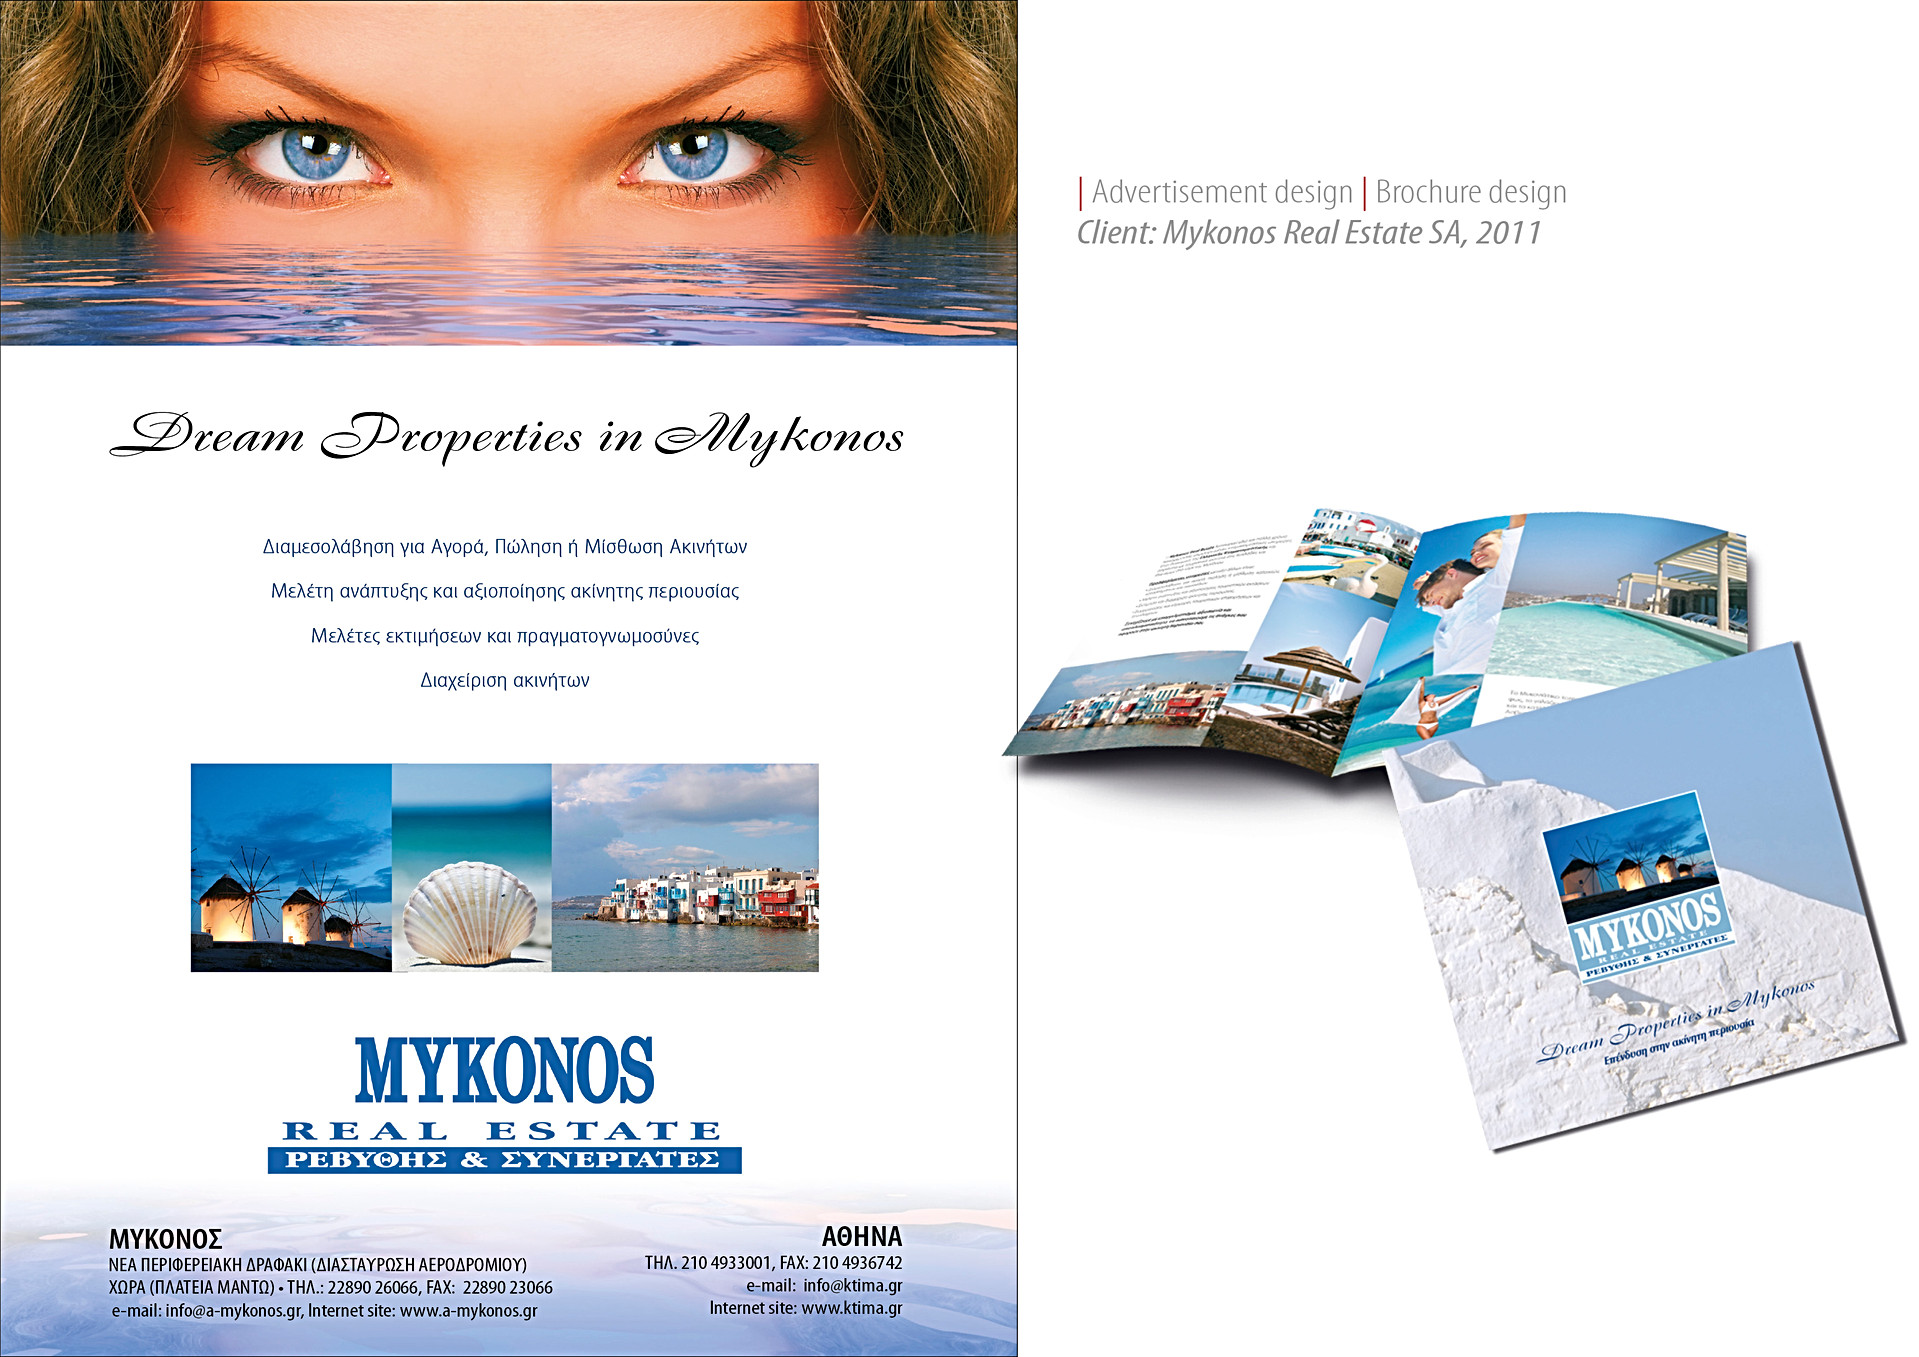 Brochure and ads for Mykonos Real Estate